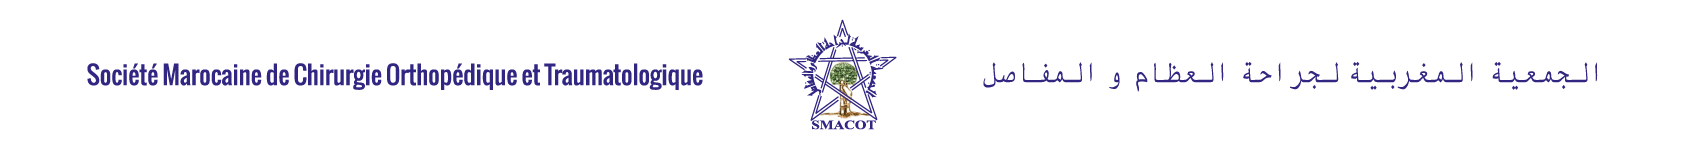 SMACOT